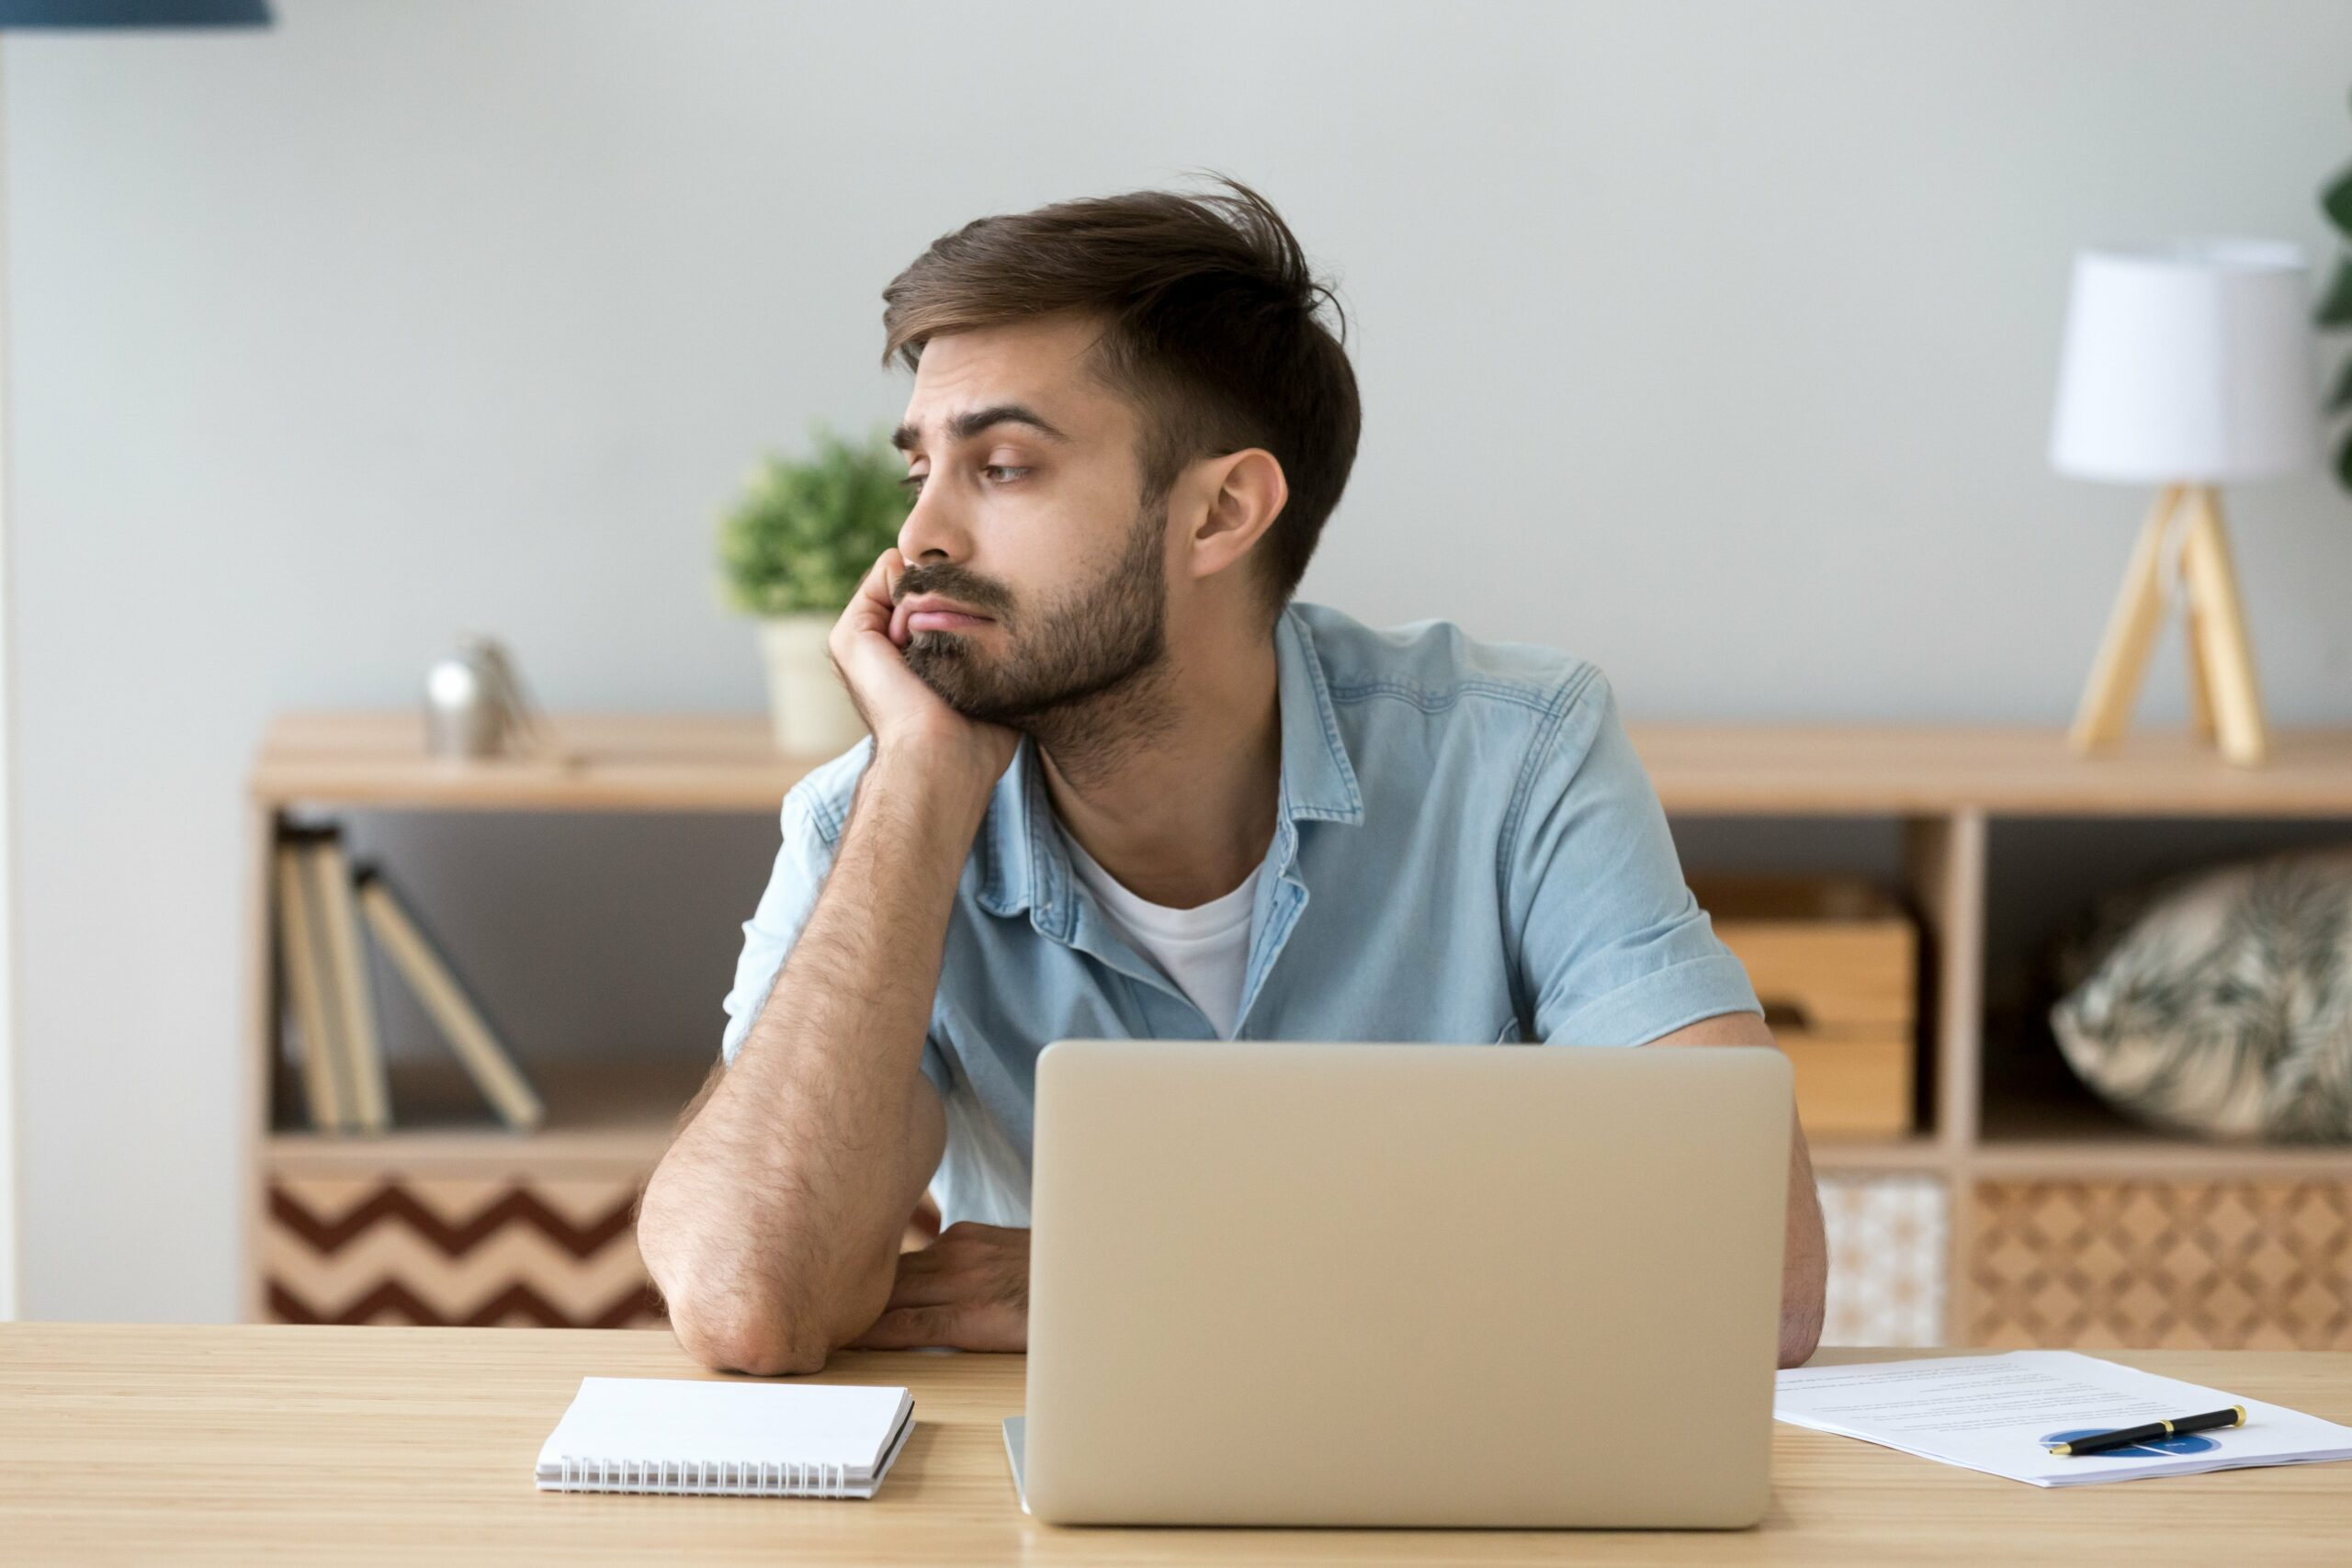 A man sitting at a desk with his laptop open, looking sad and without focus.